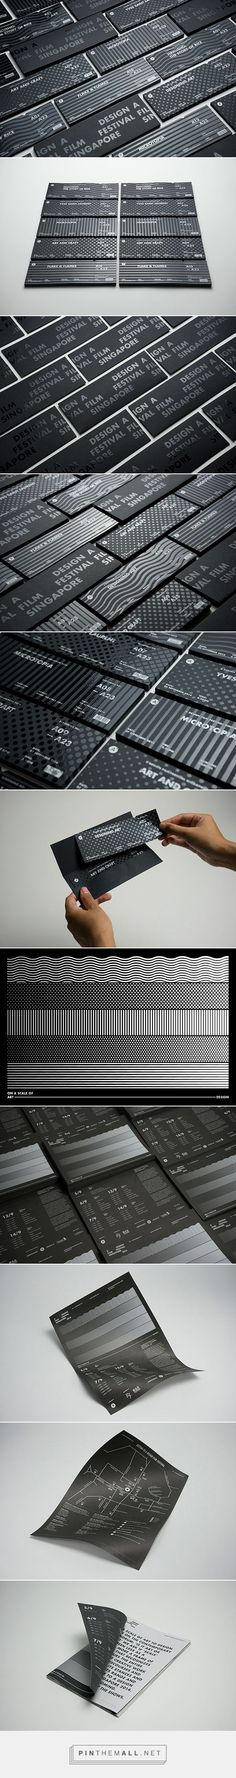 A Design Film Festival 2014 on Behance... - a grouped images picture - Pin Them All